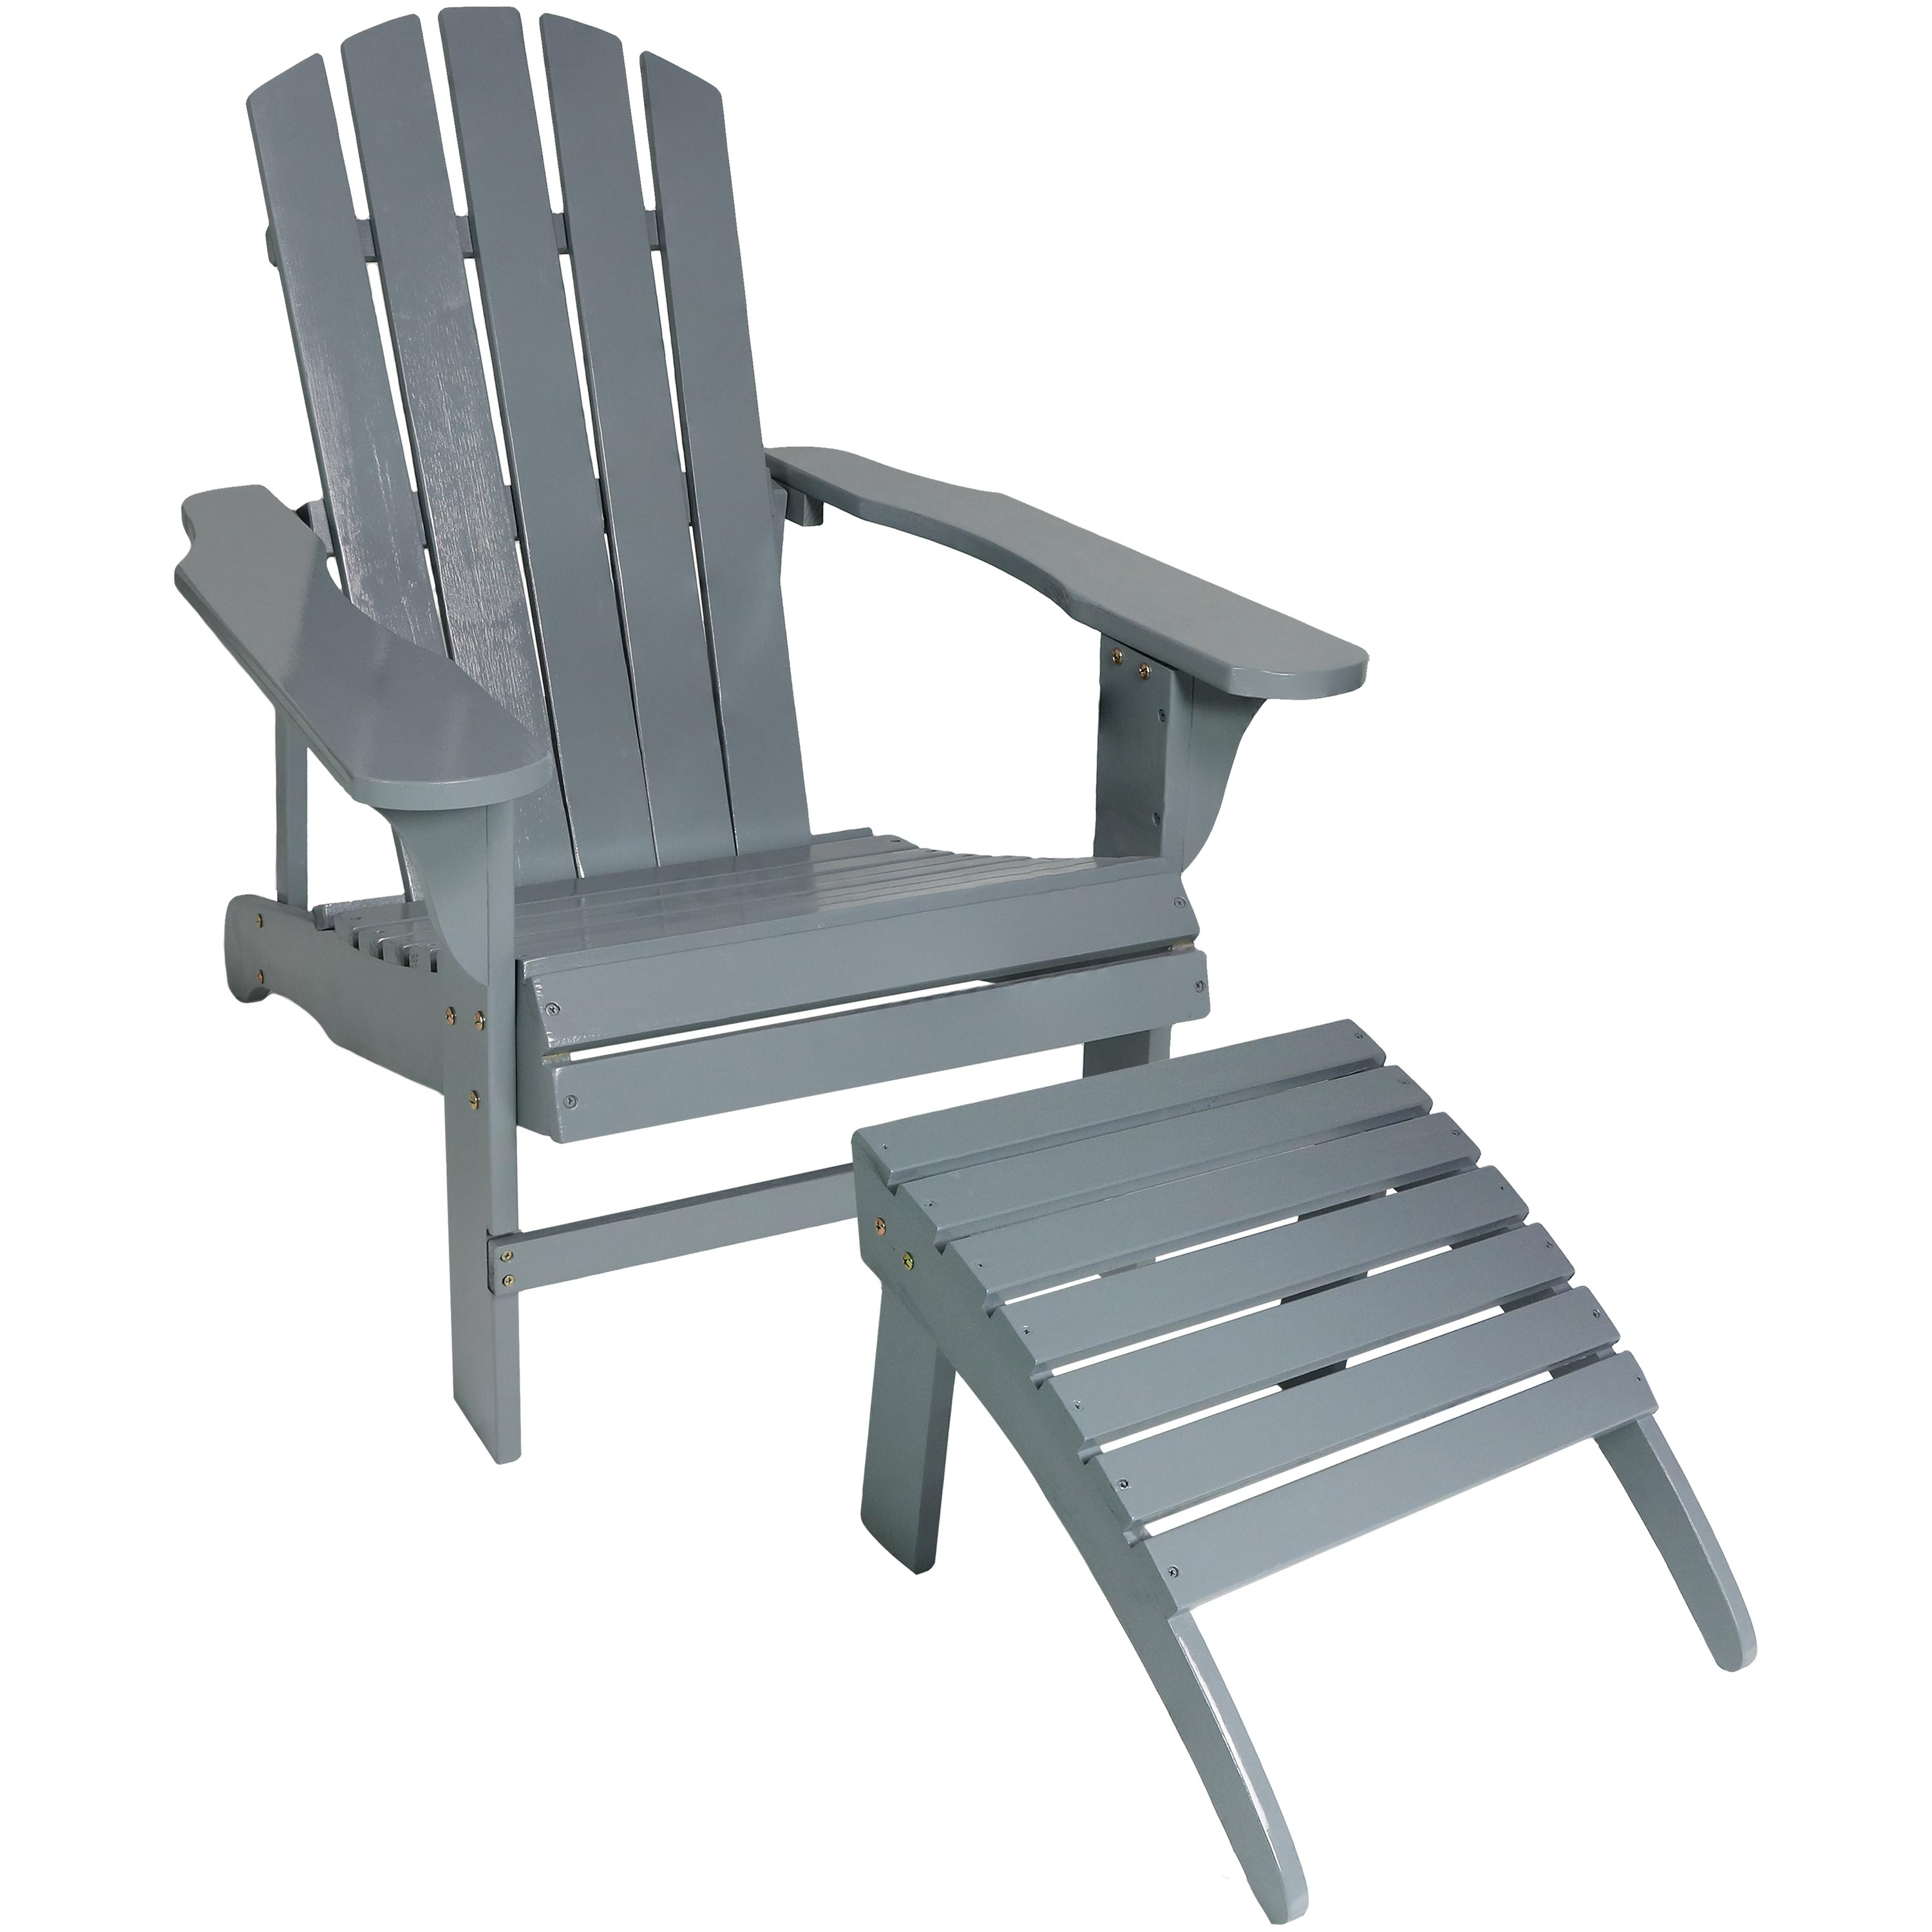 Phenomenal Details About Sunnydaze Classic Wooden Adirondack Chair With Ottoman Gray Gamerscity Chair Design For Home Gamerscityorg